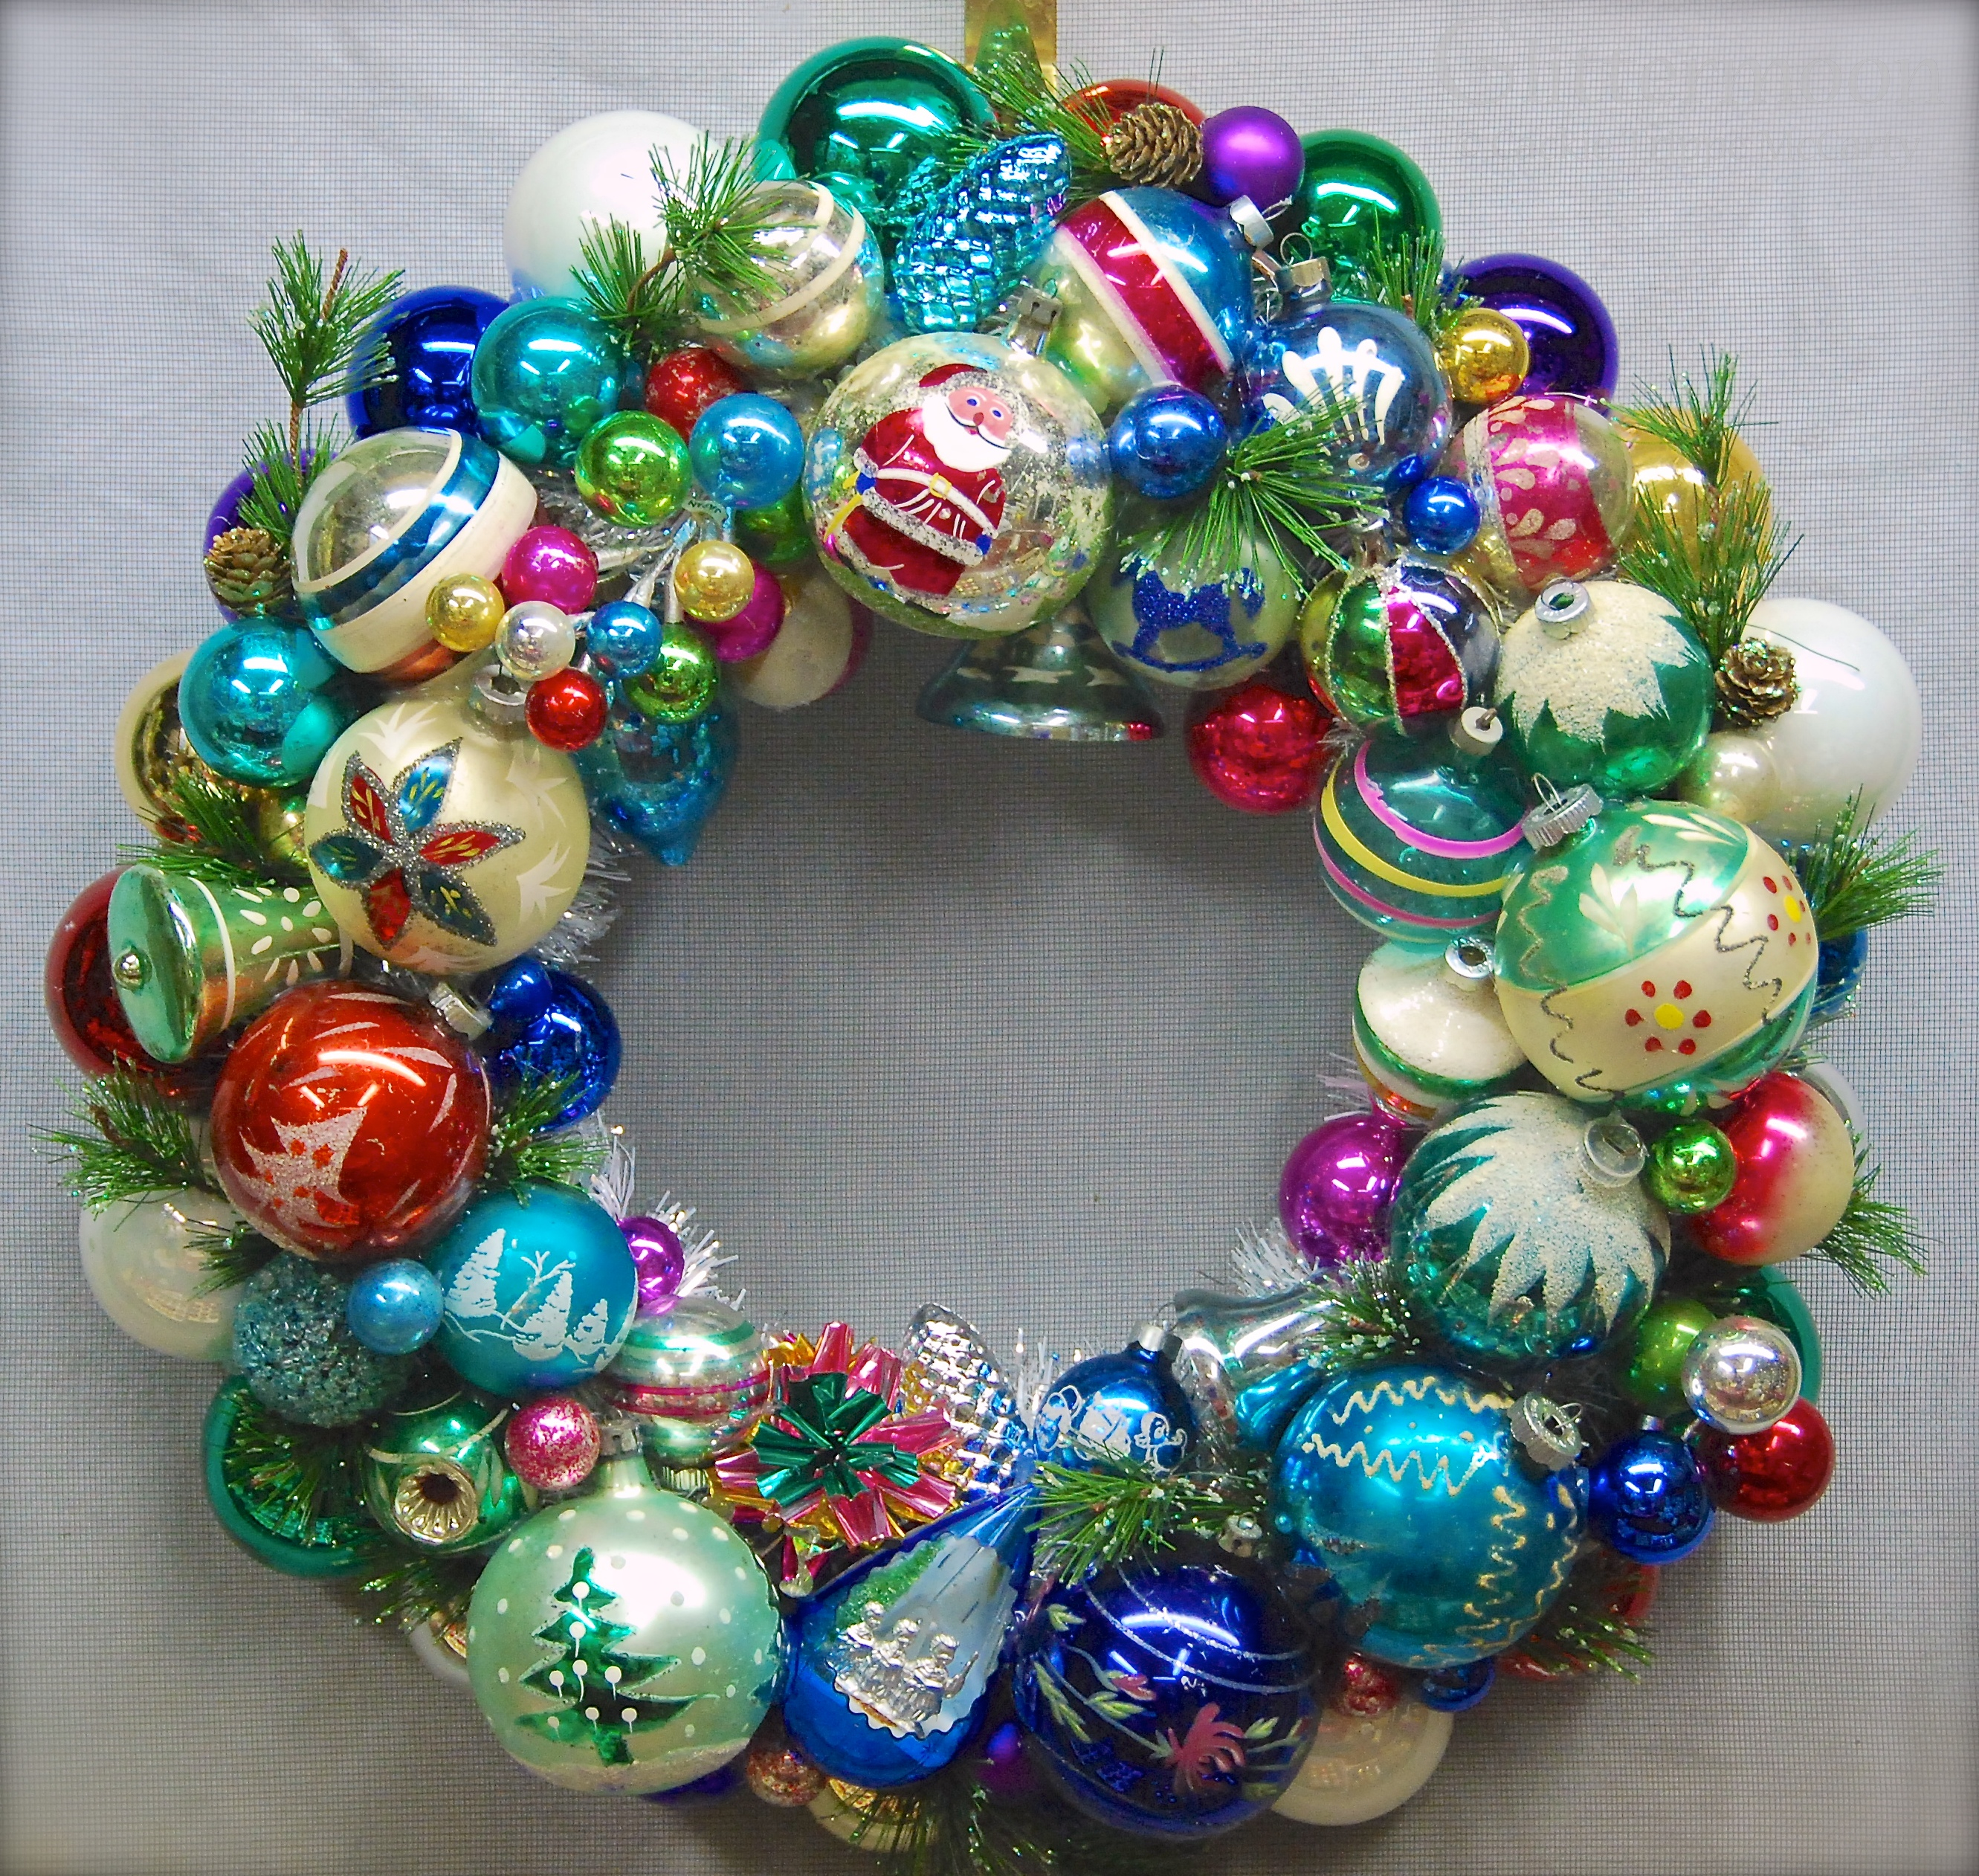 A Joy-Full Wreath (Part 1) – Glittermoon Vintage Christmas